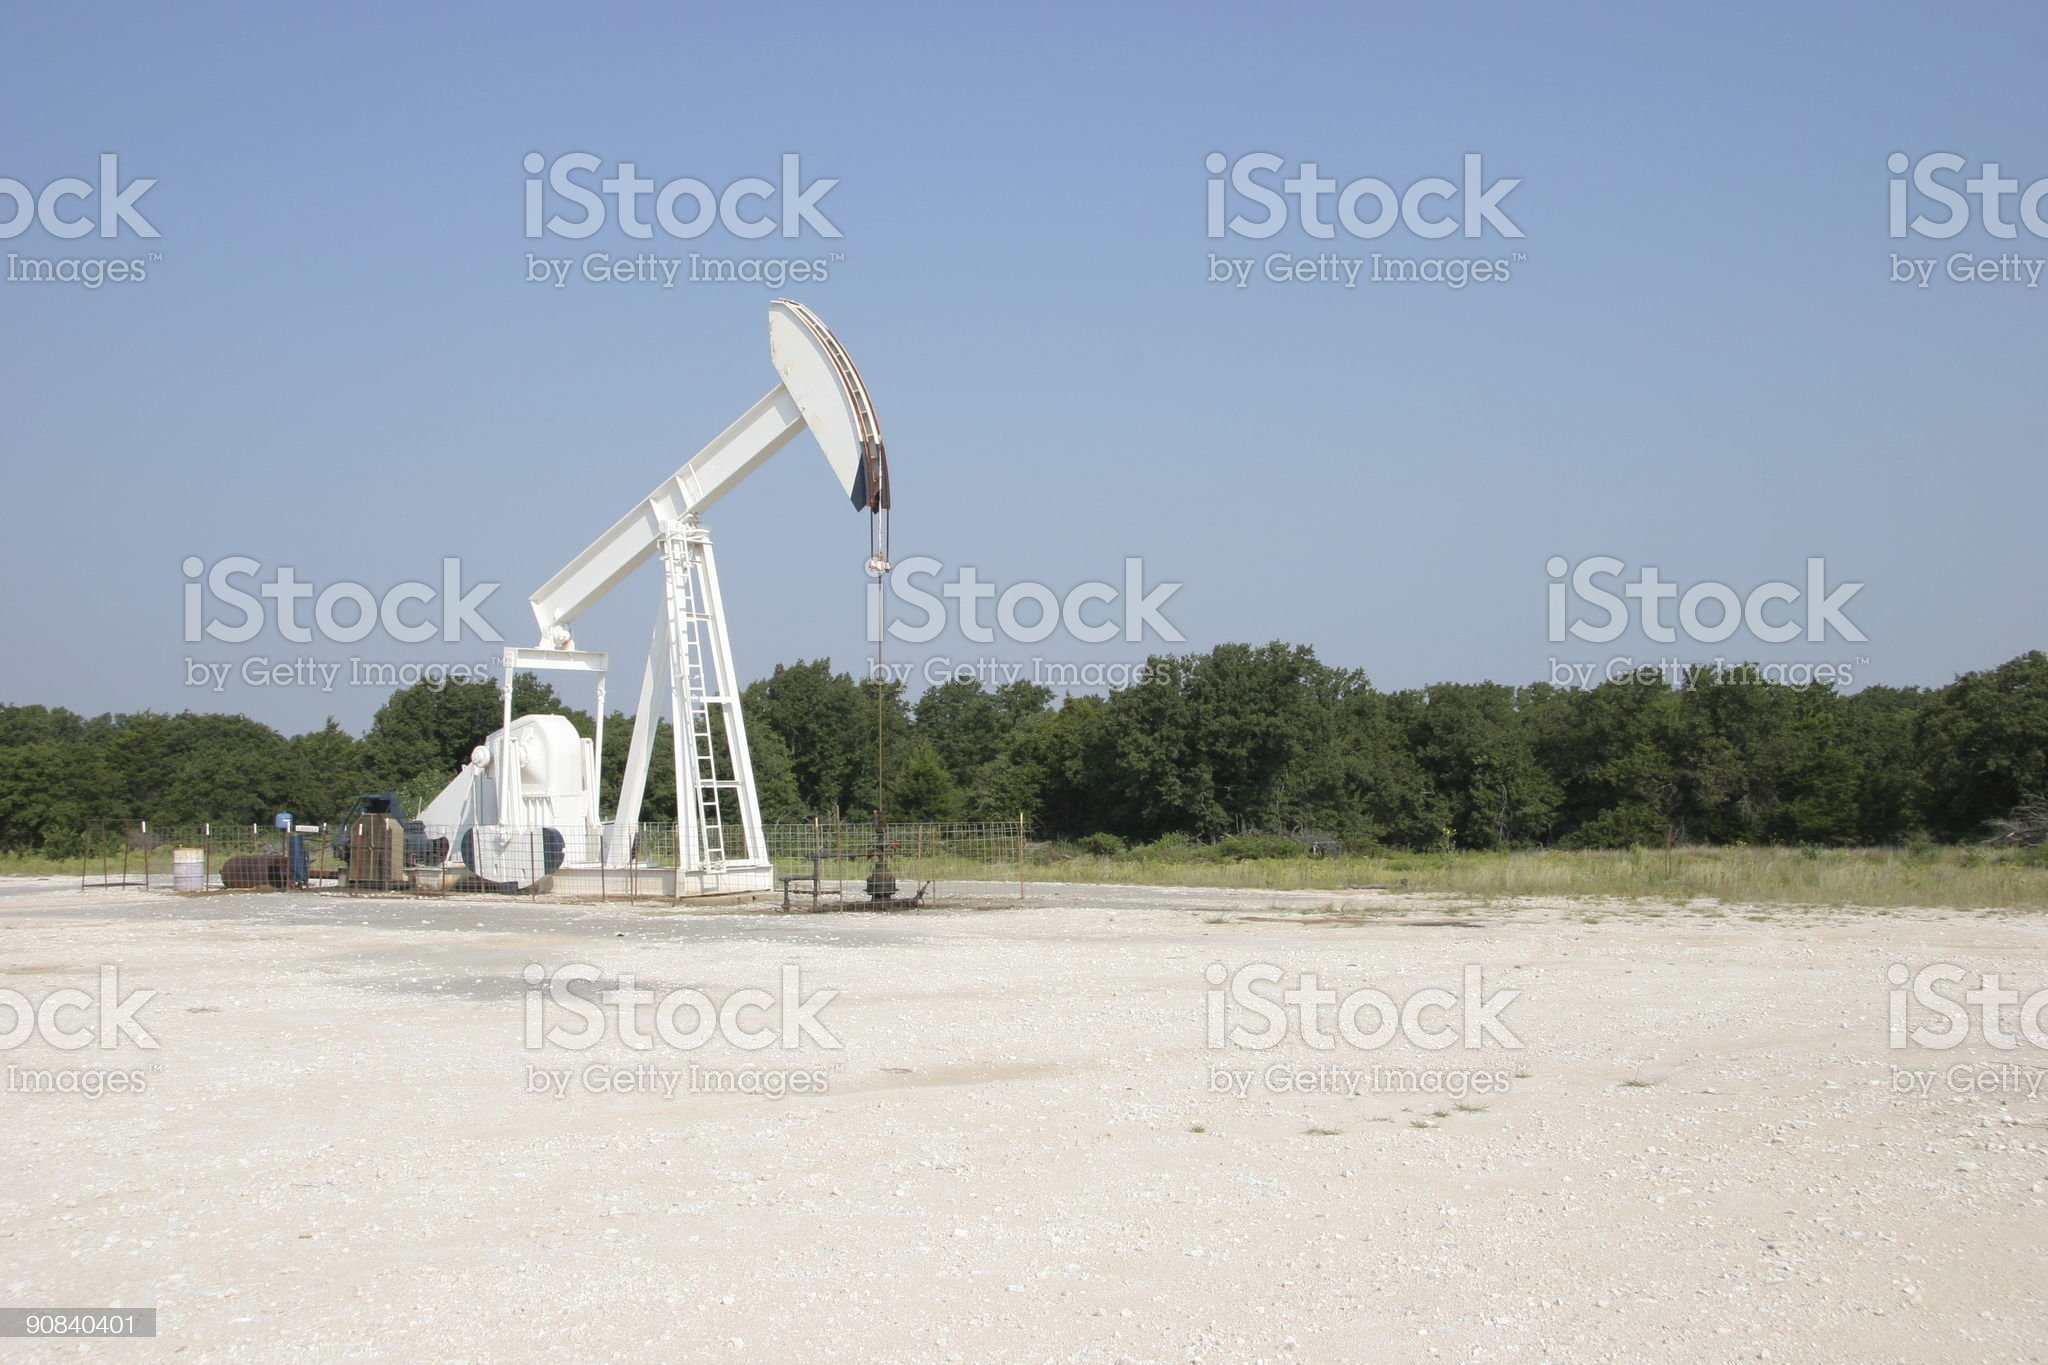 Oil Pump Sky and Ground royalty-free stock photo